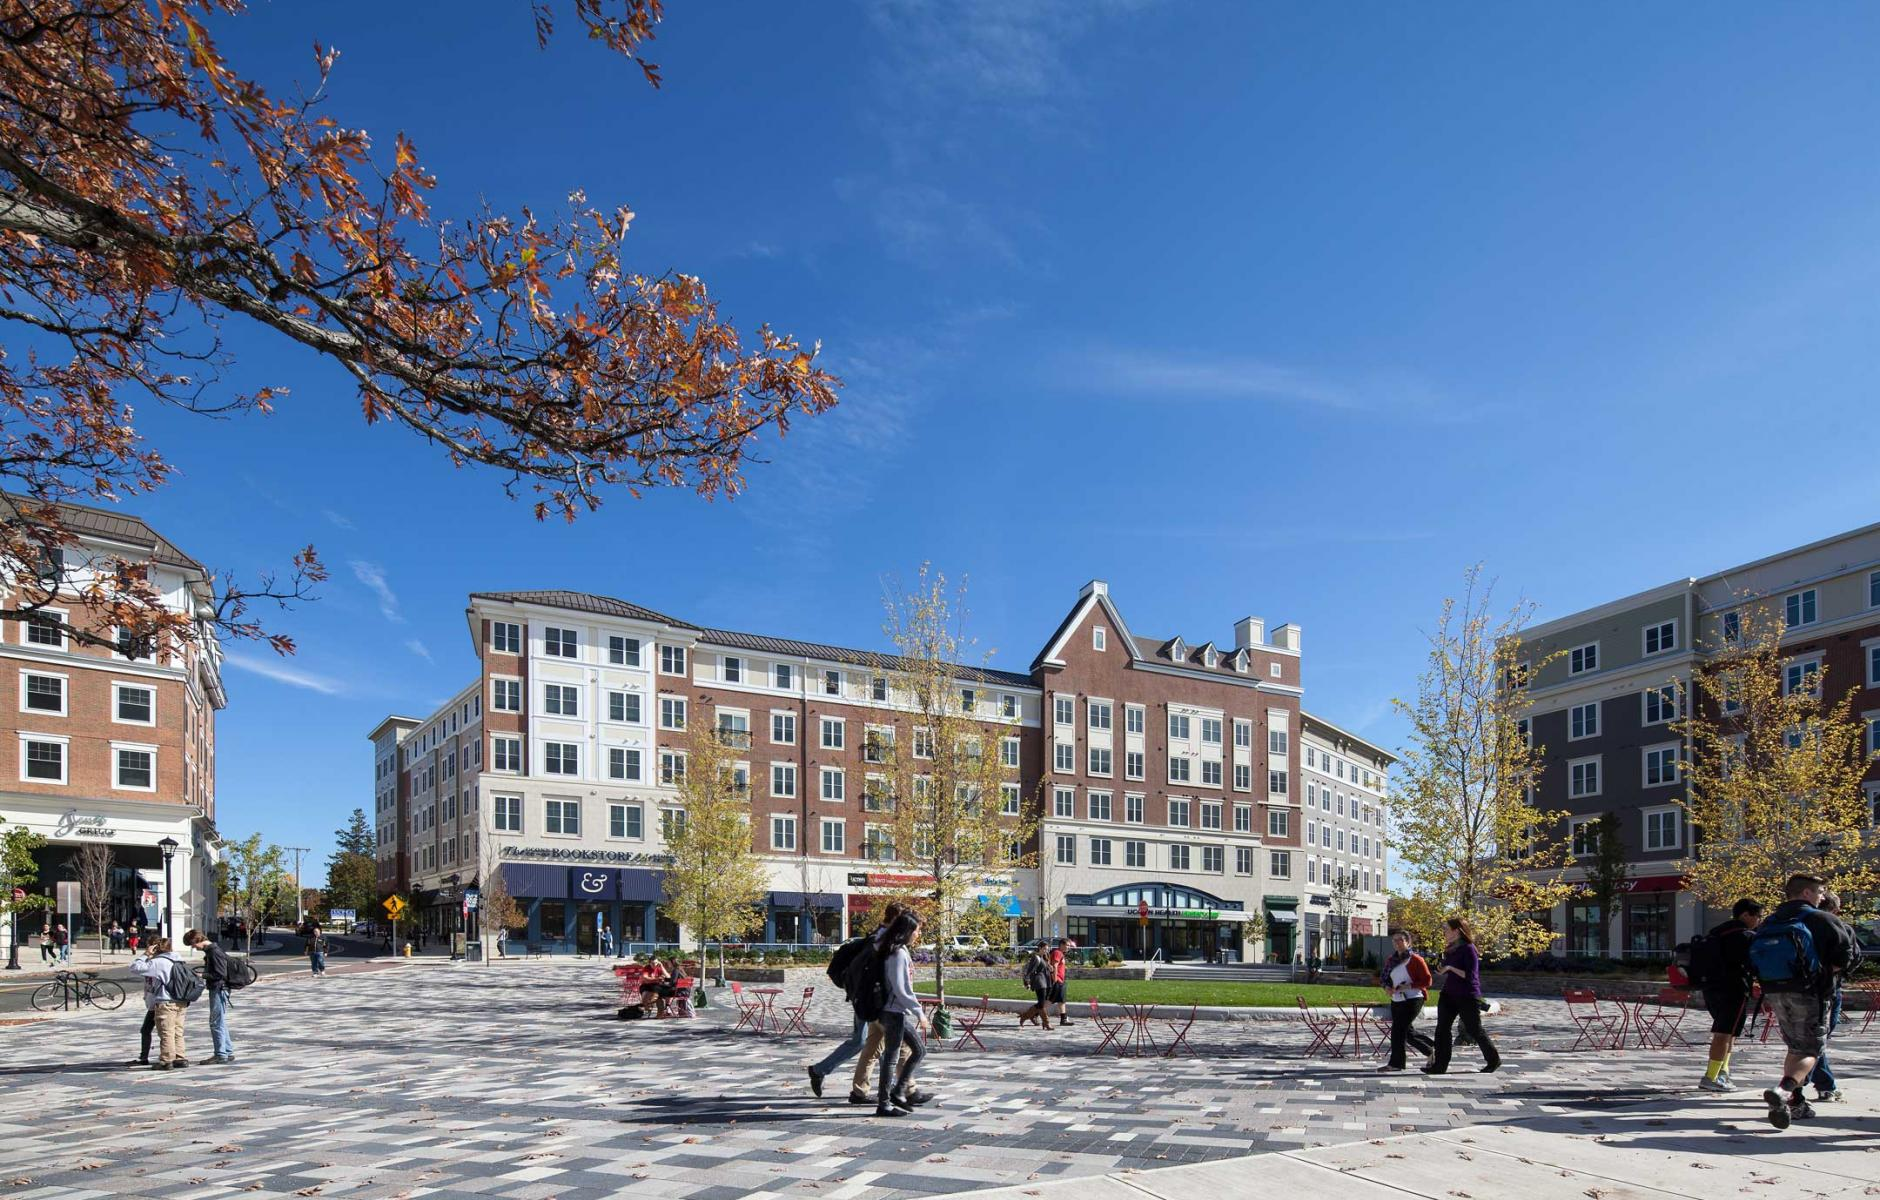 A mixed-use center for town and gown | CNU